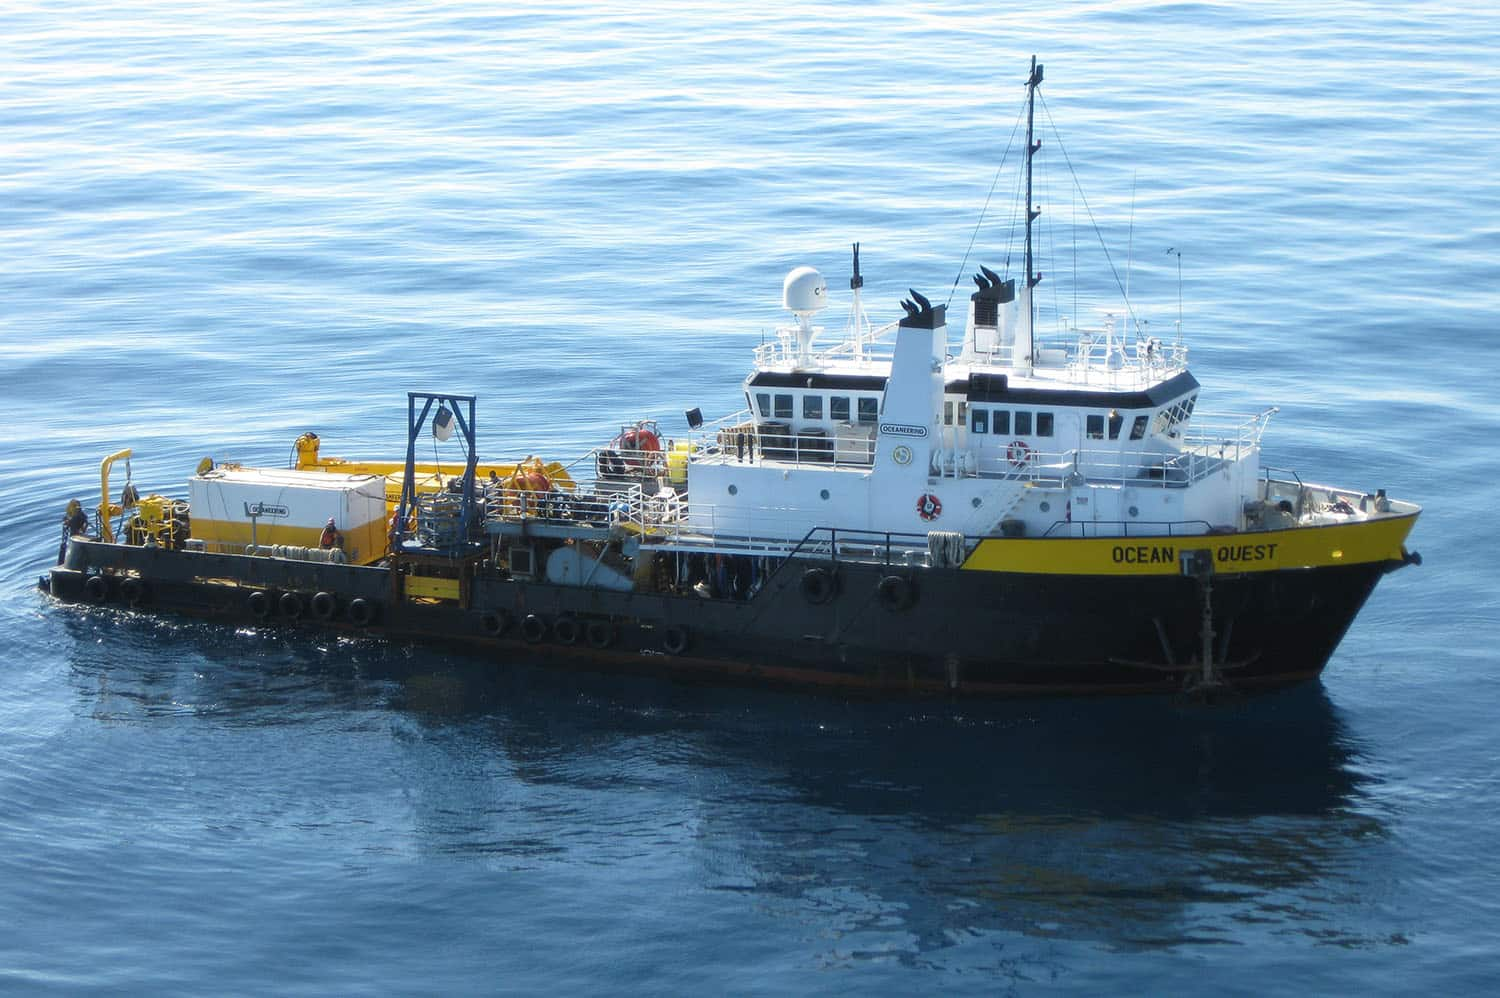 DSV Ocean Quest, subsea welding, diving, U.S. Jones Act